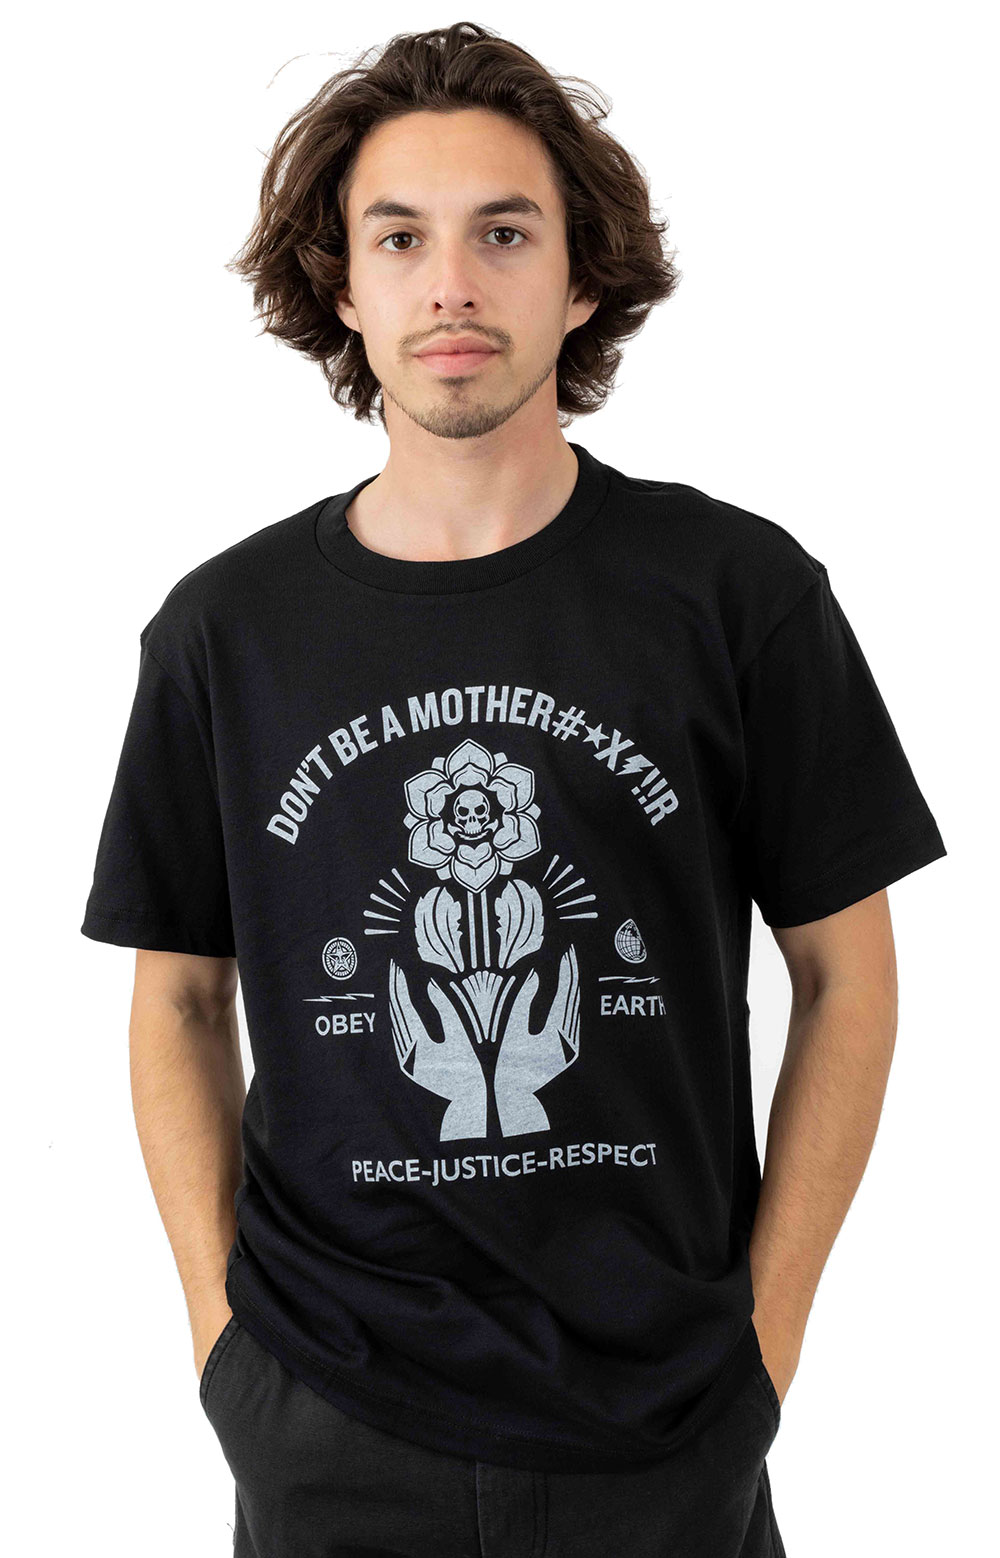 Obey Mothrfr T-Shirt - Black